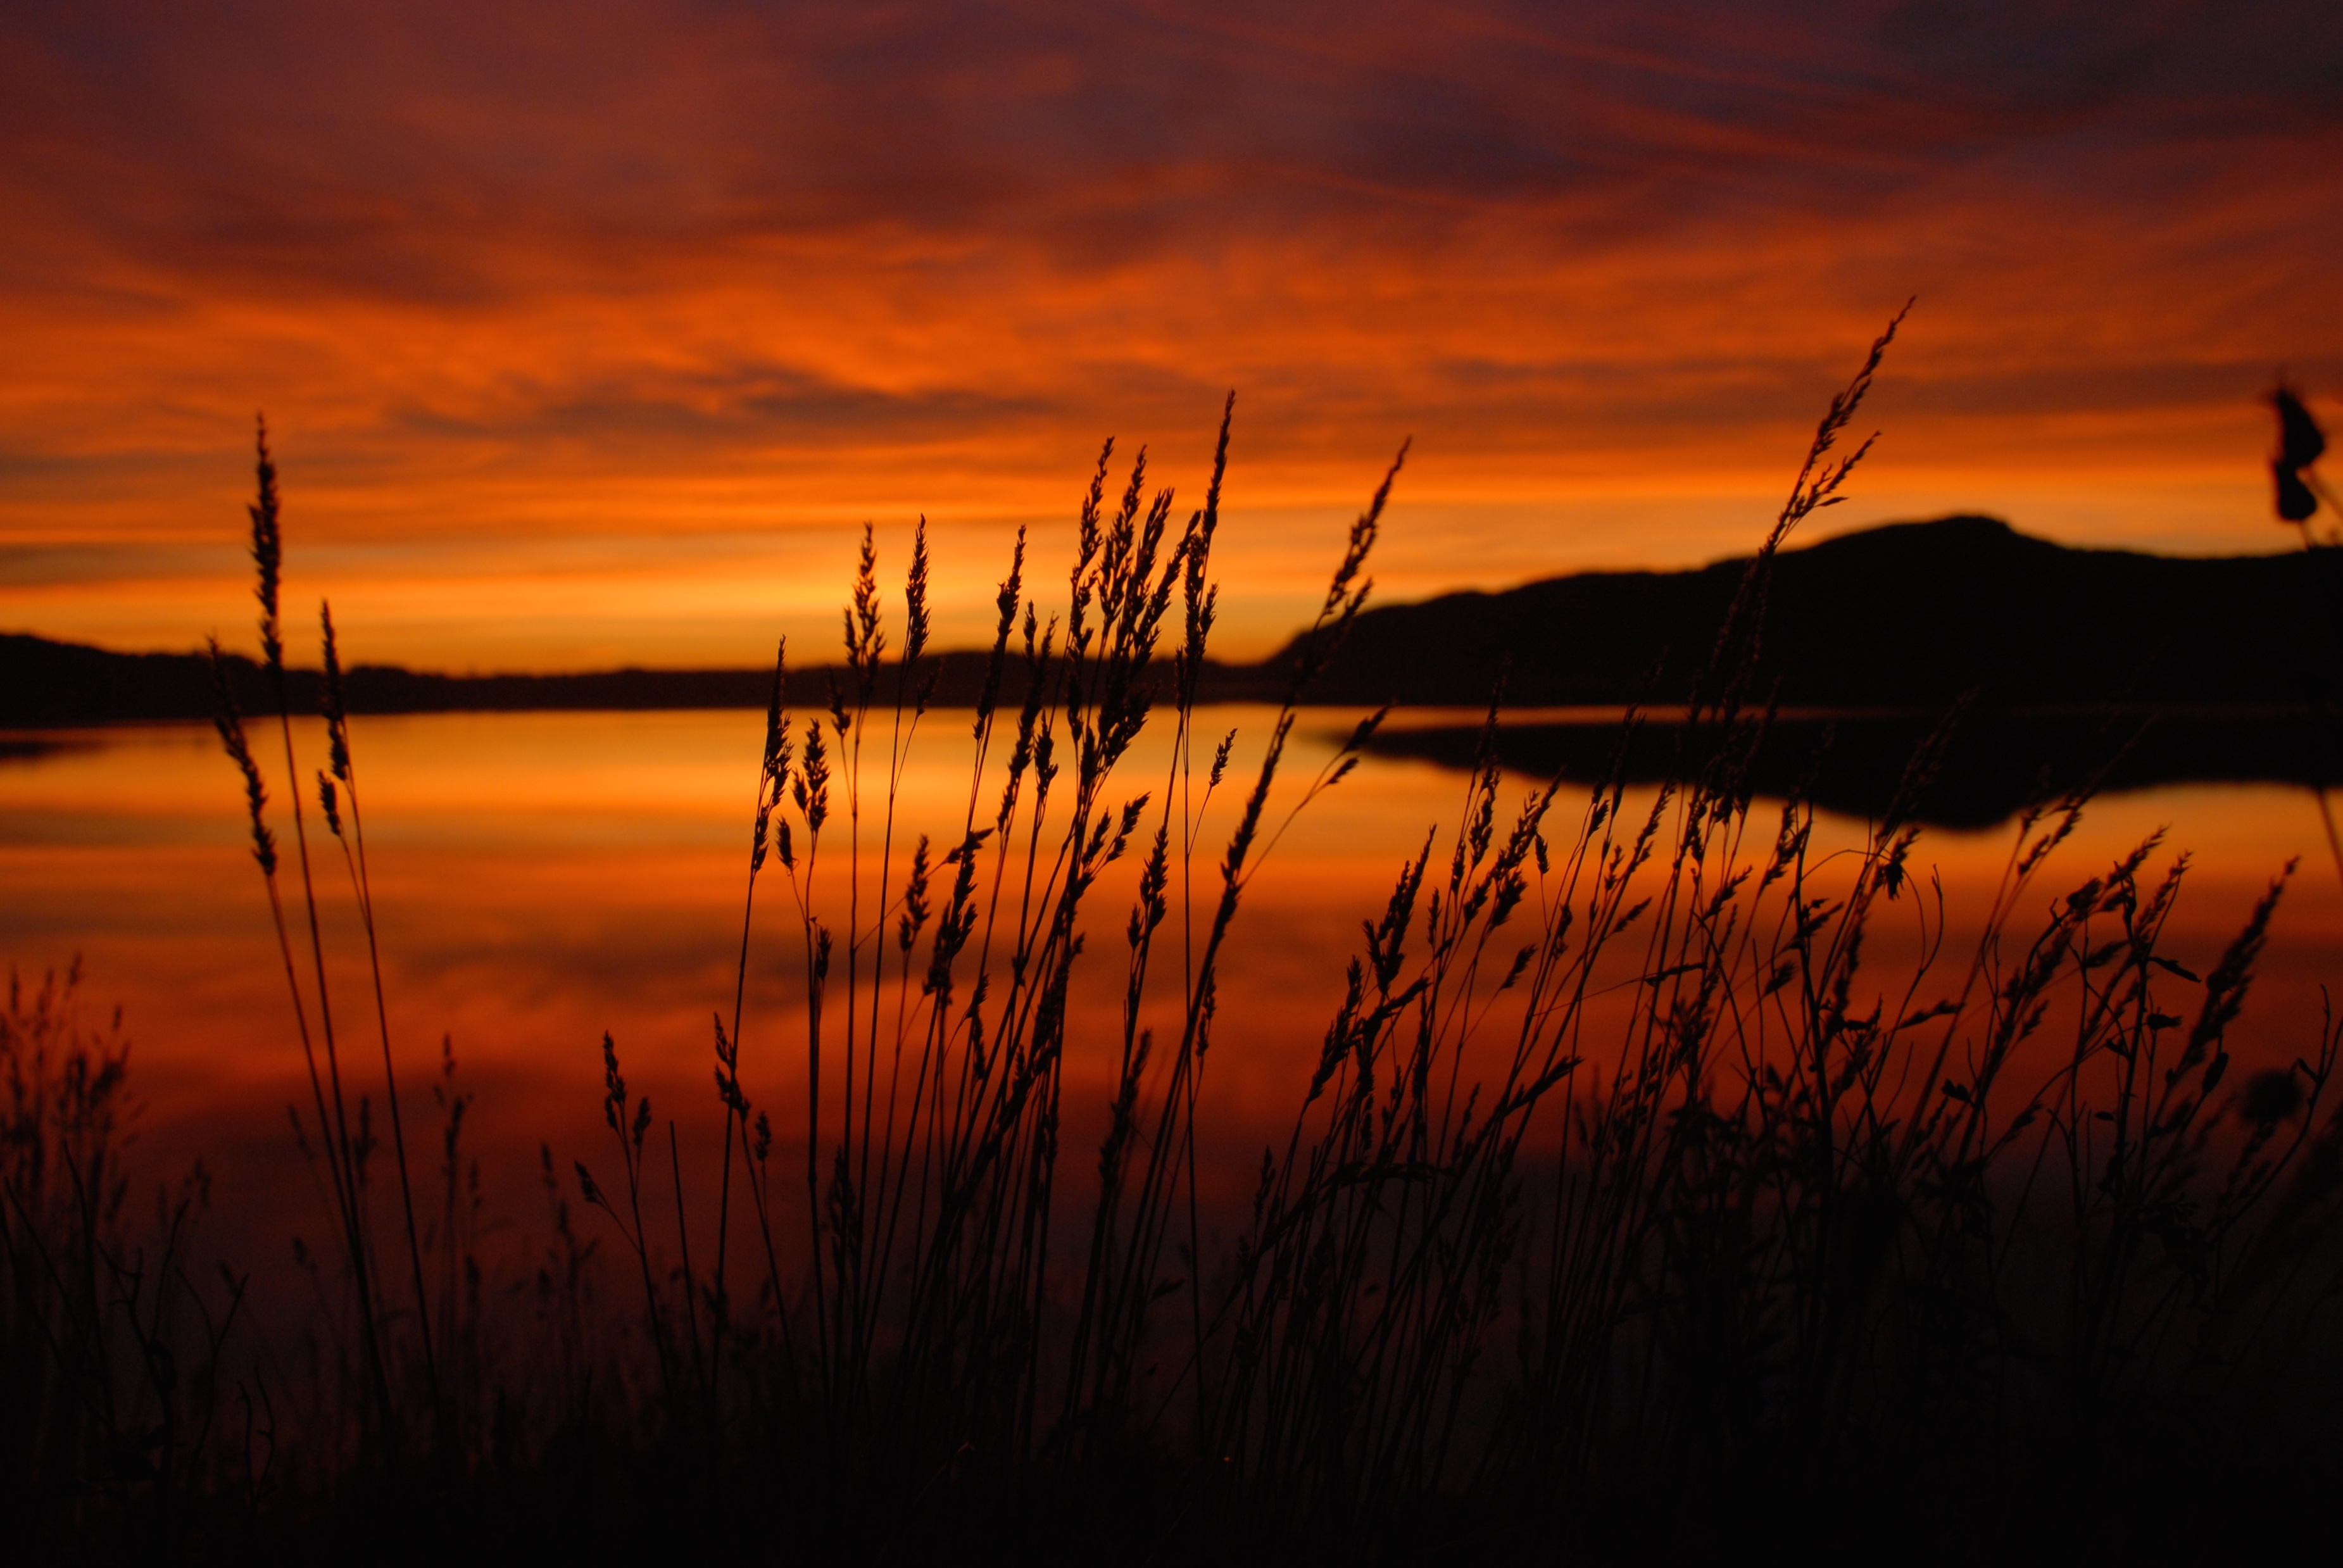 Landscapes, nature, Norway, lake, sunset, red, colors, straw, water, reflection, sky, clouds, , Povarova Ree Svetlana